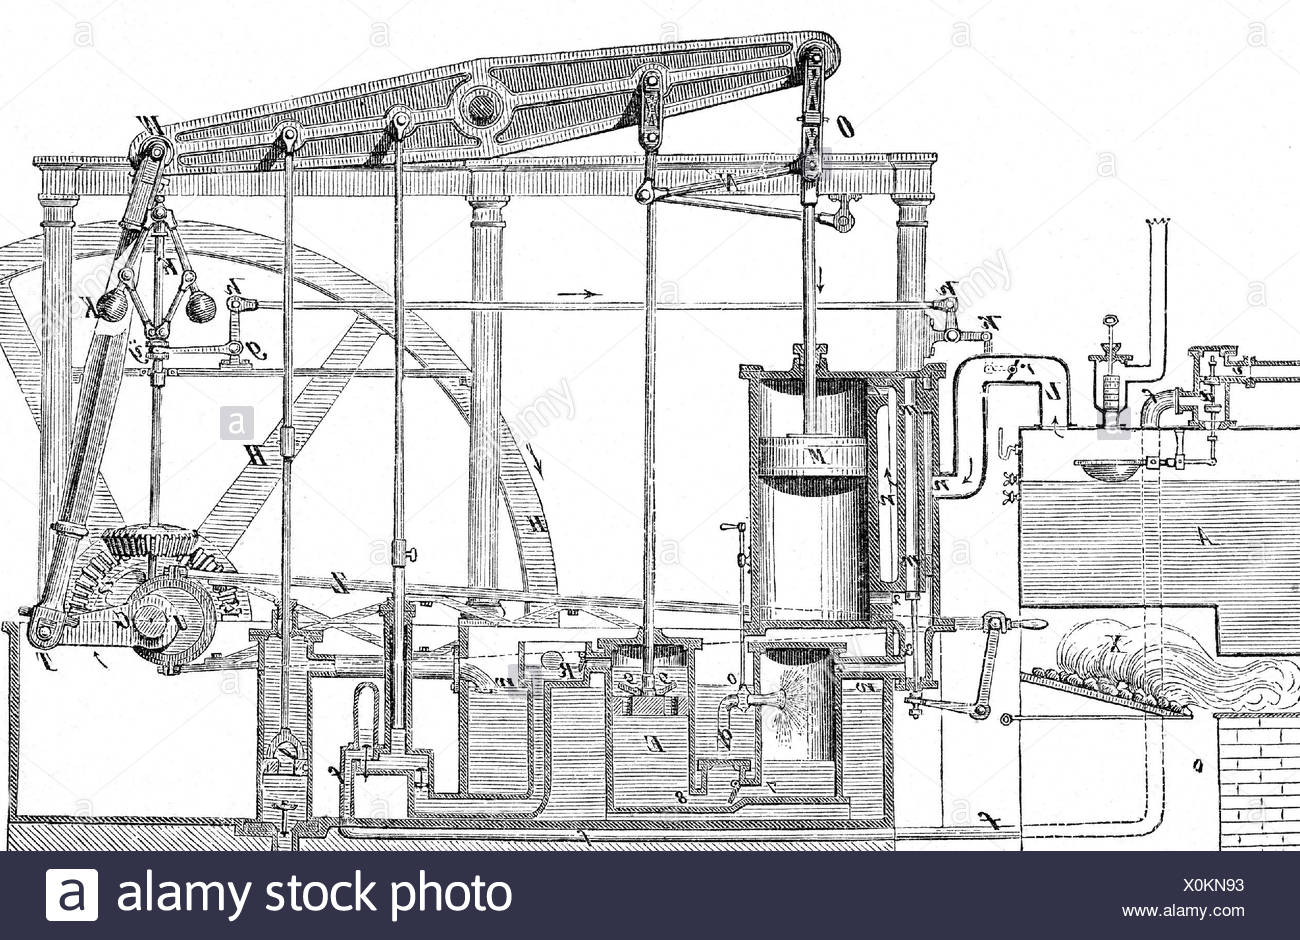 hight resolution of watt james 19 1 1736 25 8 1819 scottish engineer inventor schematic illustration of his steam engine additional rights clearances na